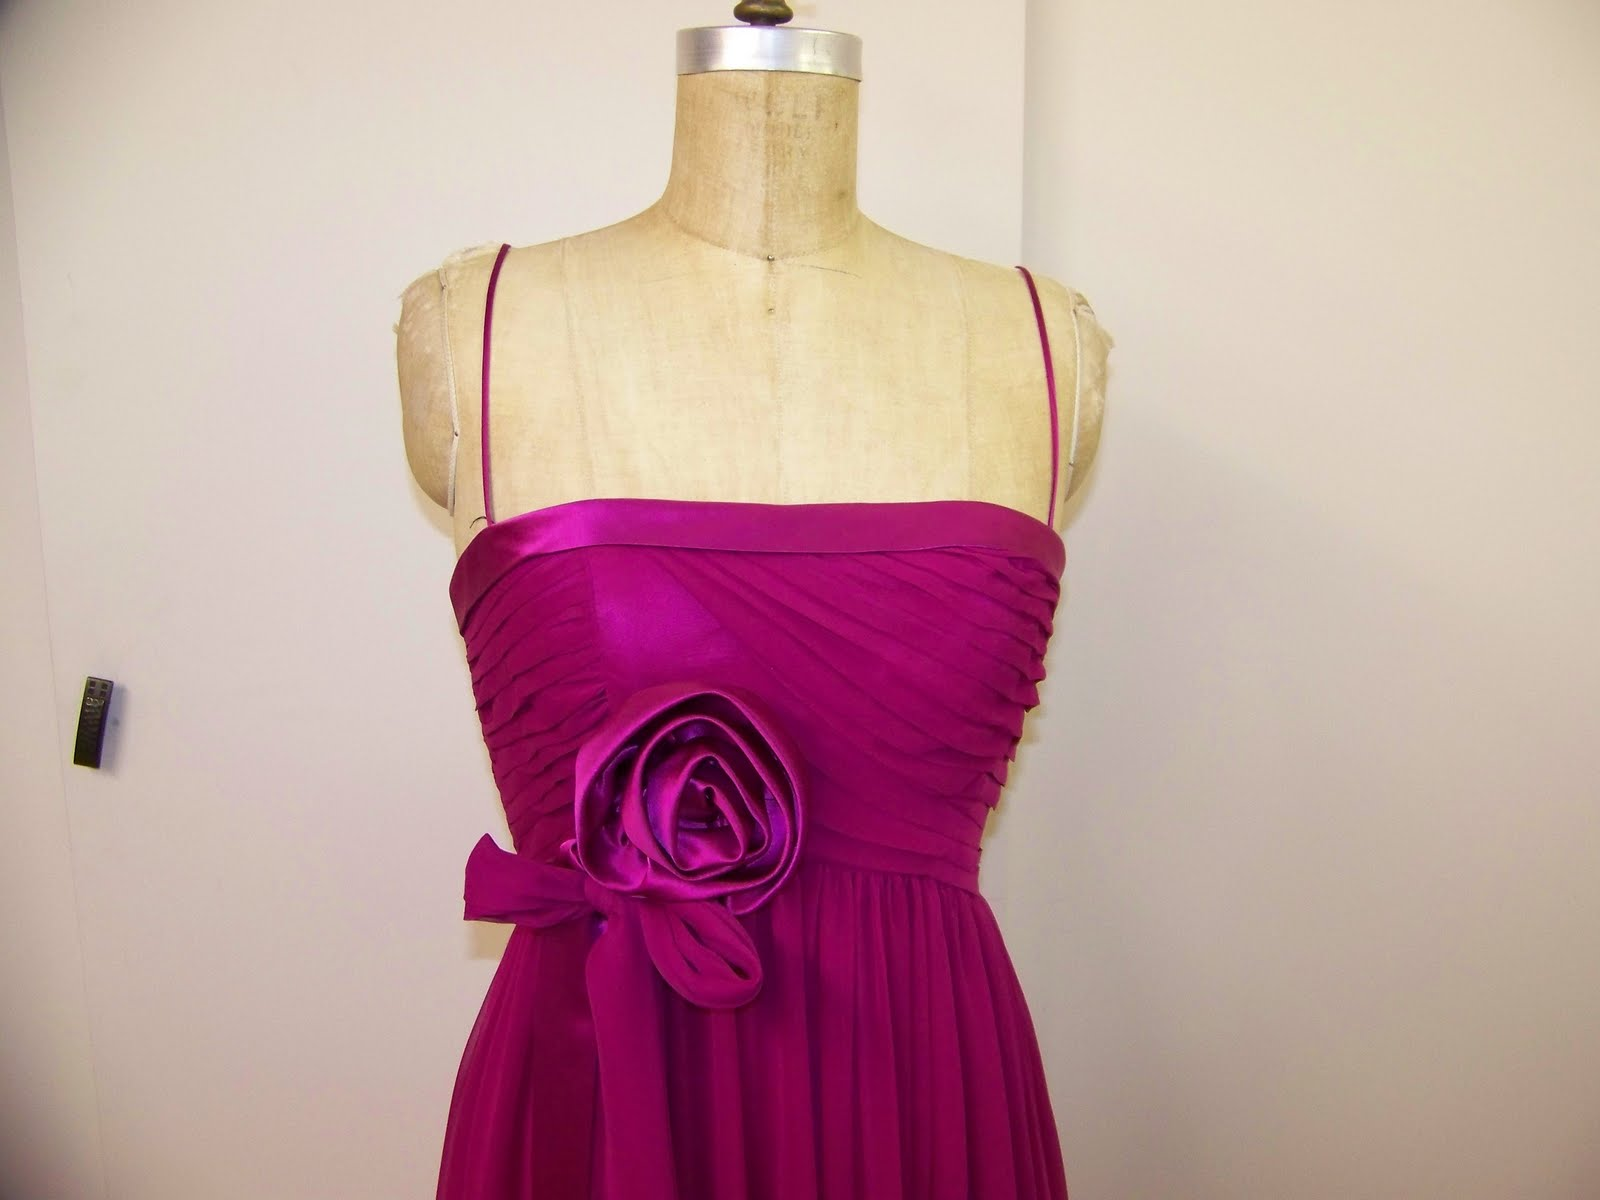 Satin ribbons decorating this beautiful chiffon gown. It feels dazzling and  enchanted d56a2a2d84